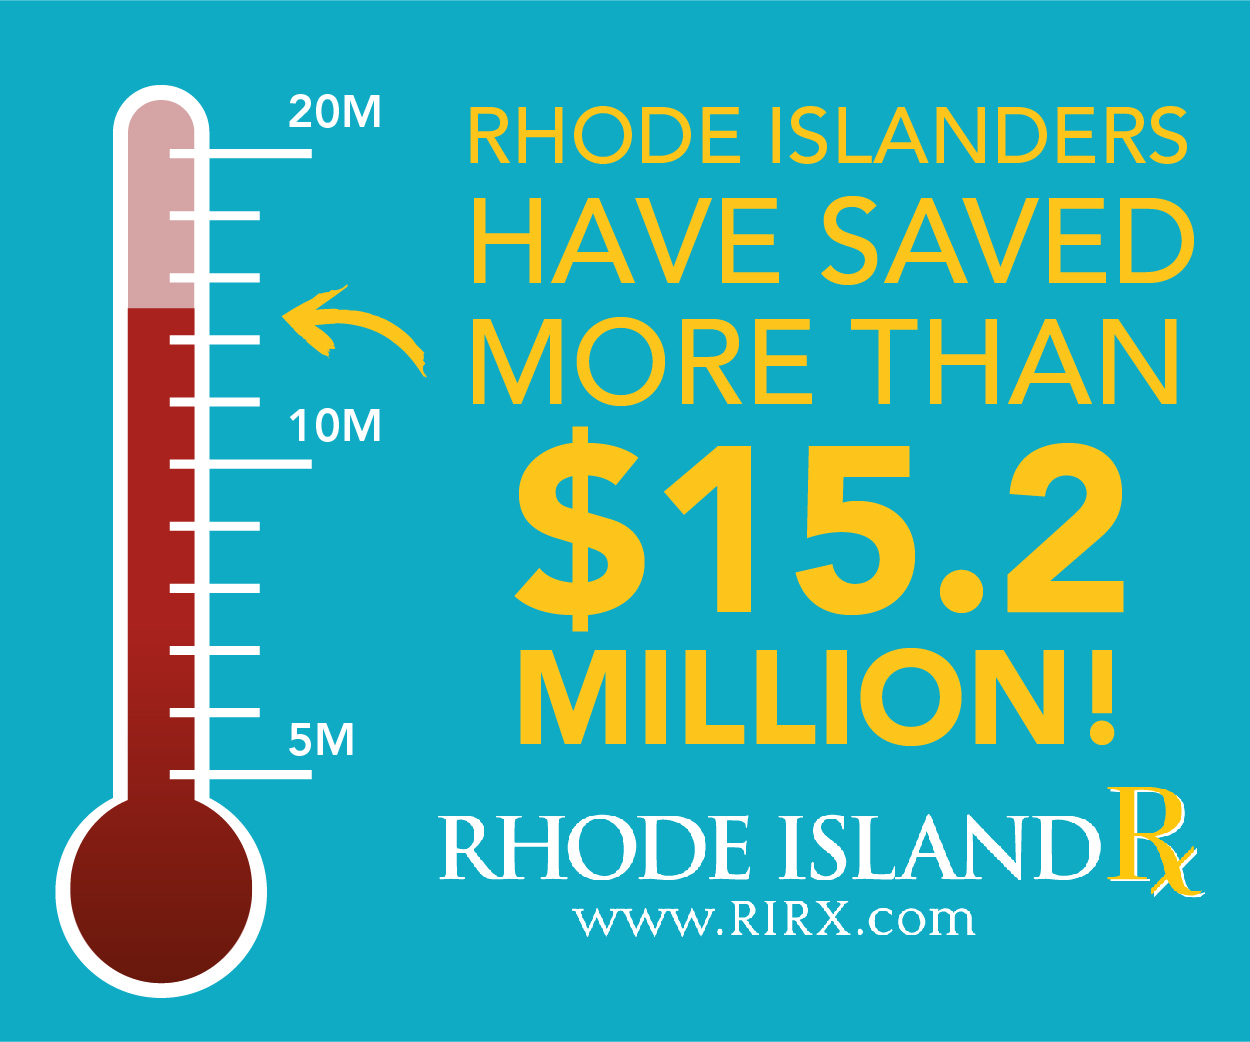 Rhode-Island-Rx-Card---Thermometer---Social-Media-03.jpg